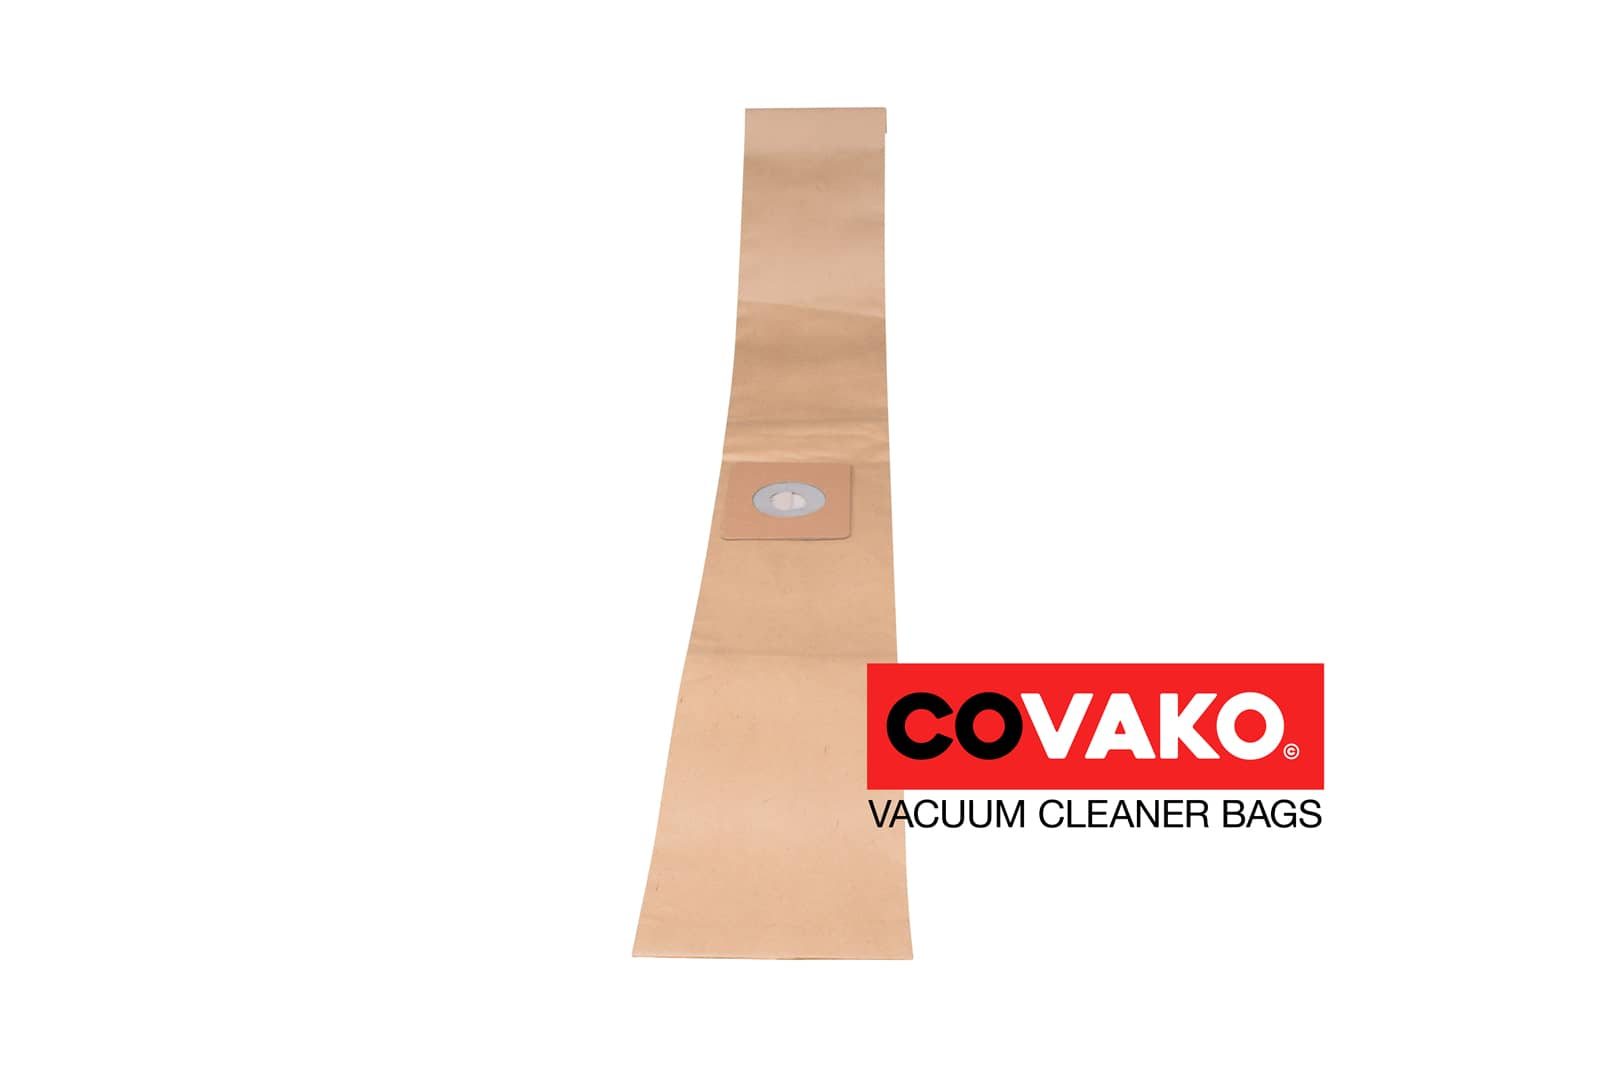 Fast Silent 10 / Paper - Fast vacuum cleaner bags